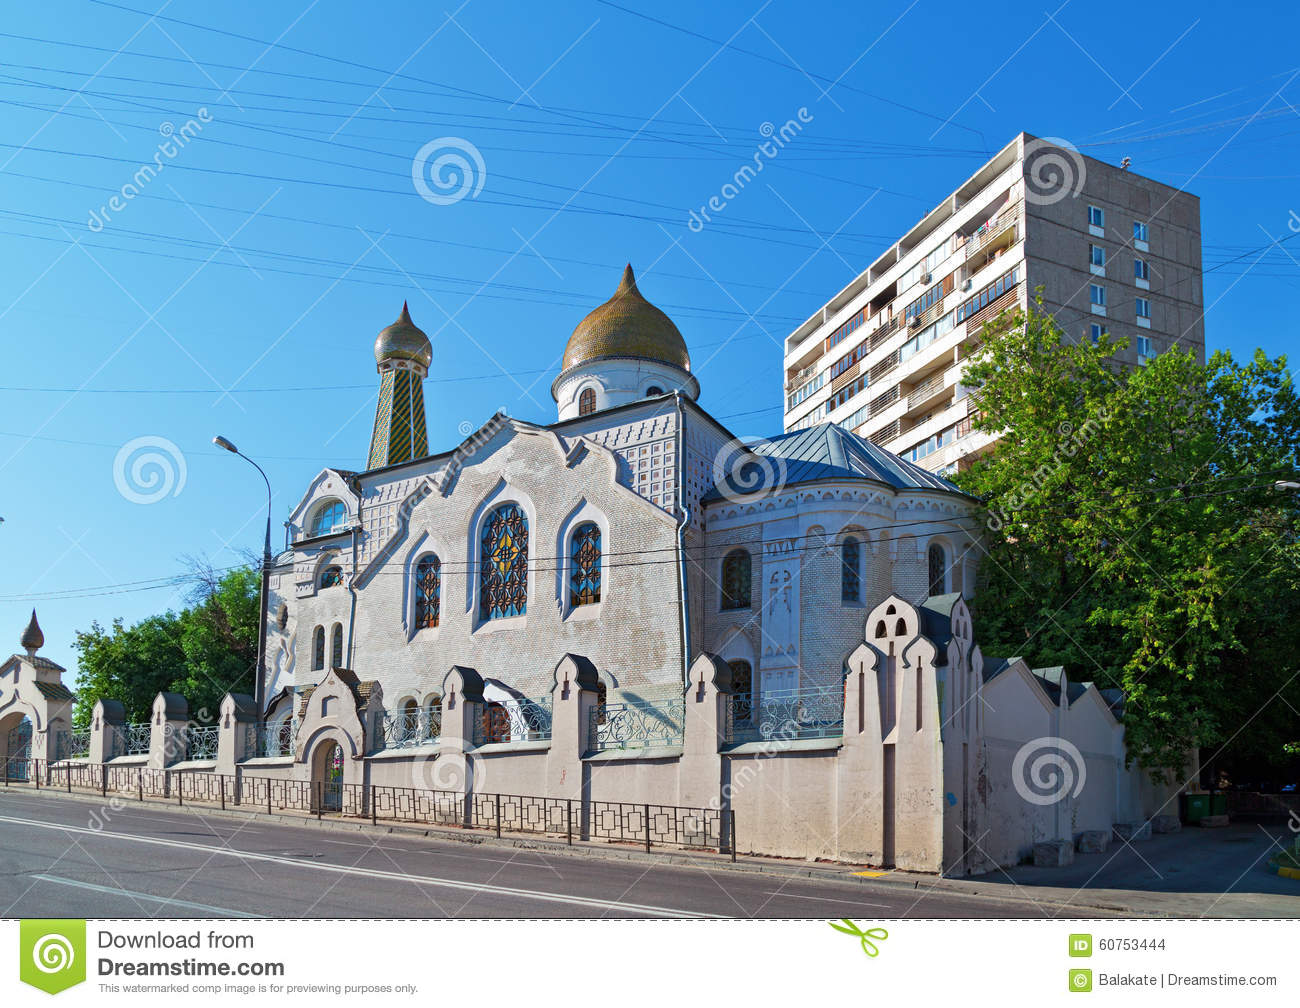 Where in Moscow are the Old Believer churches